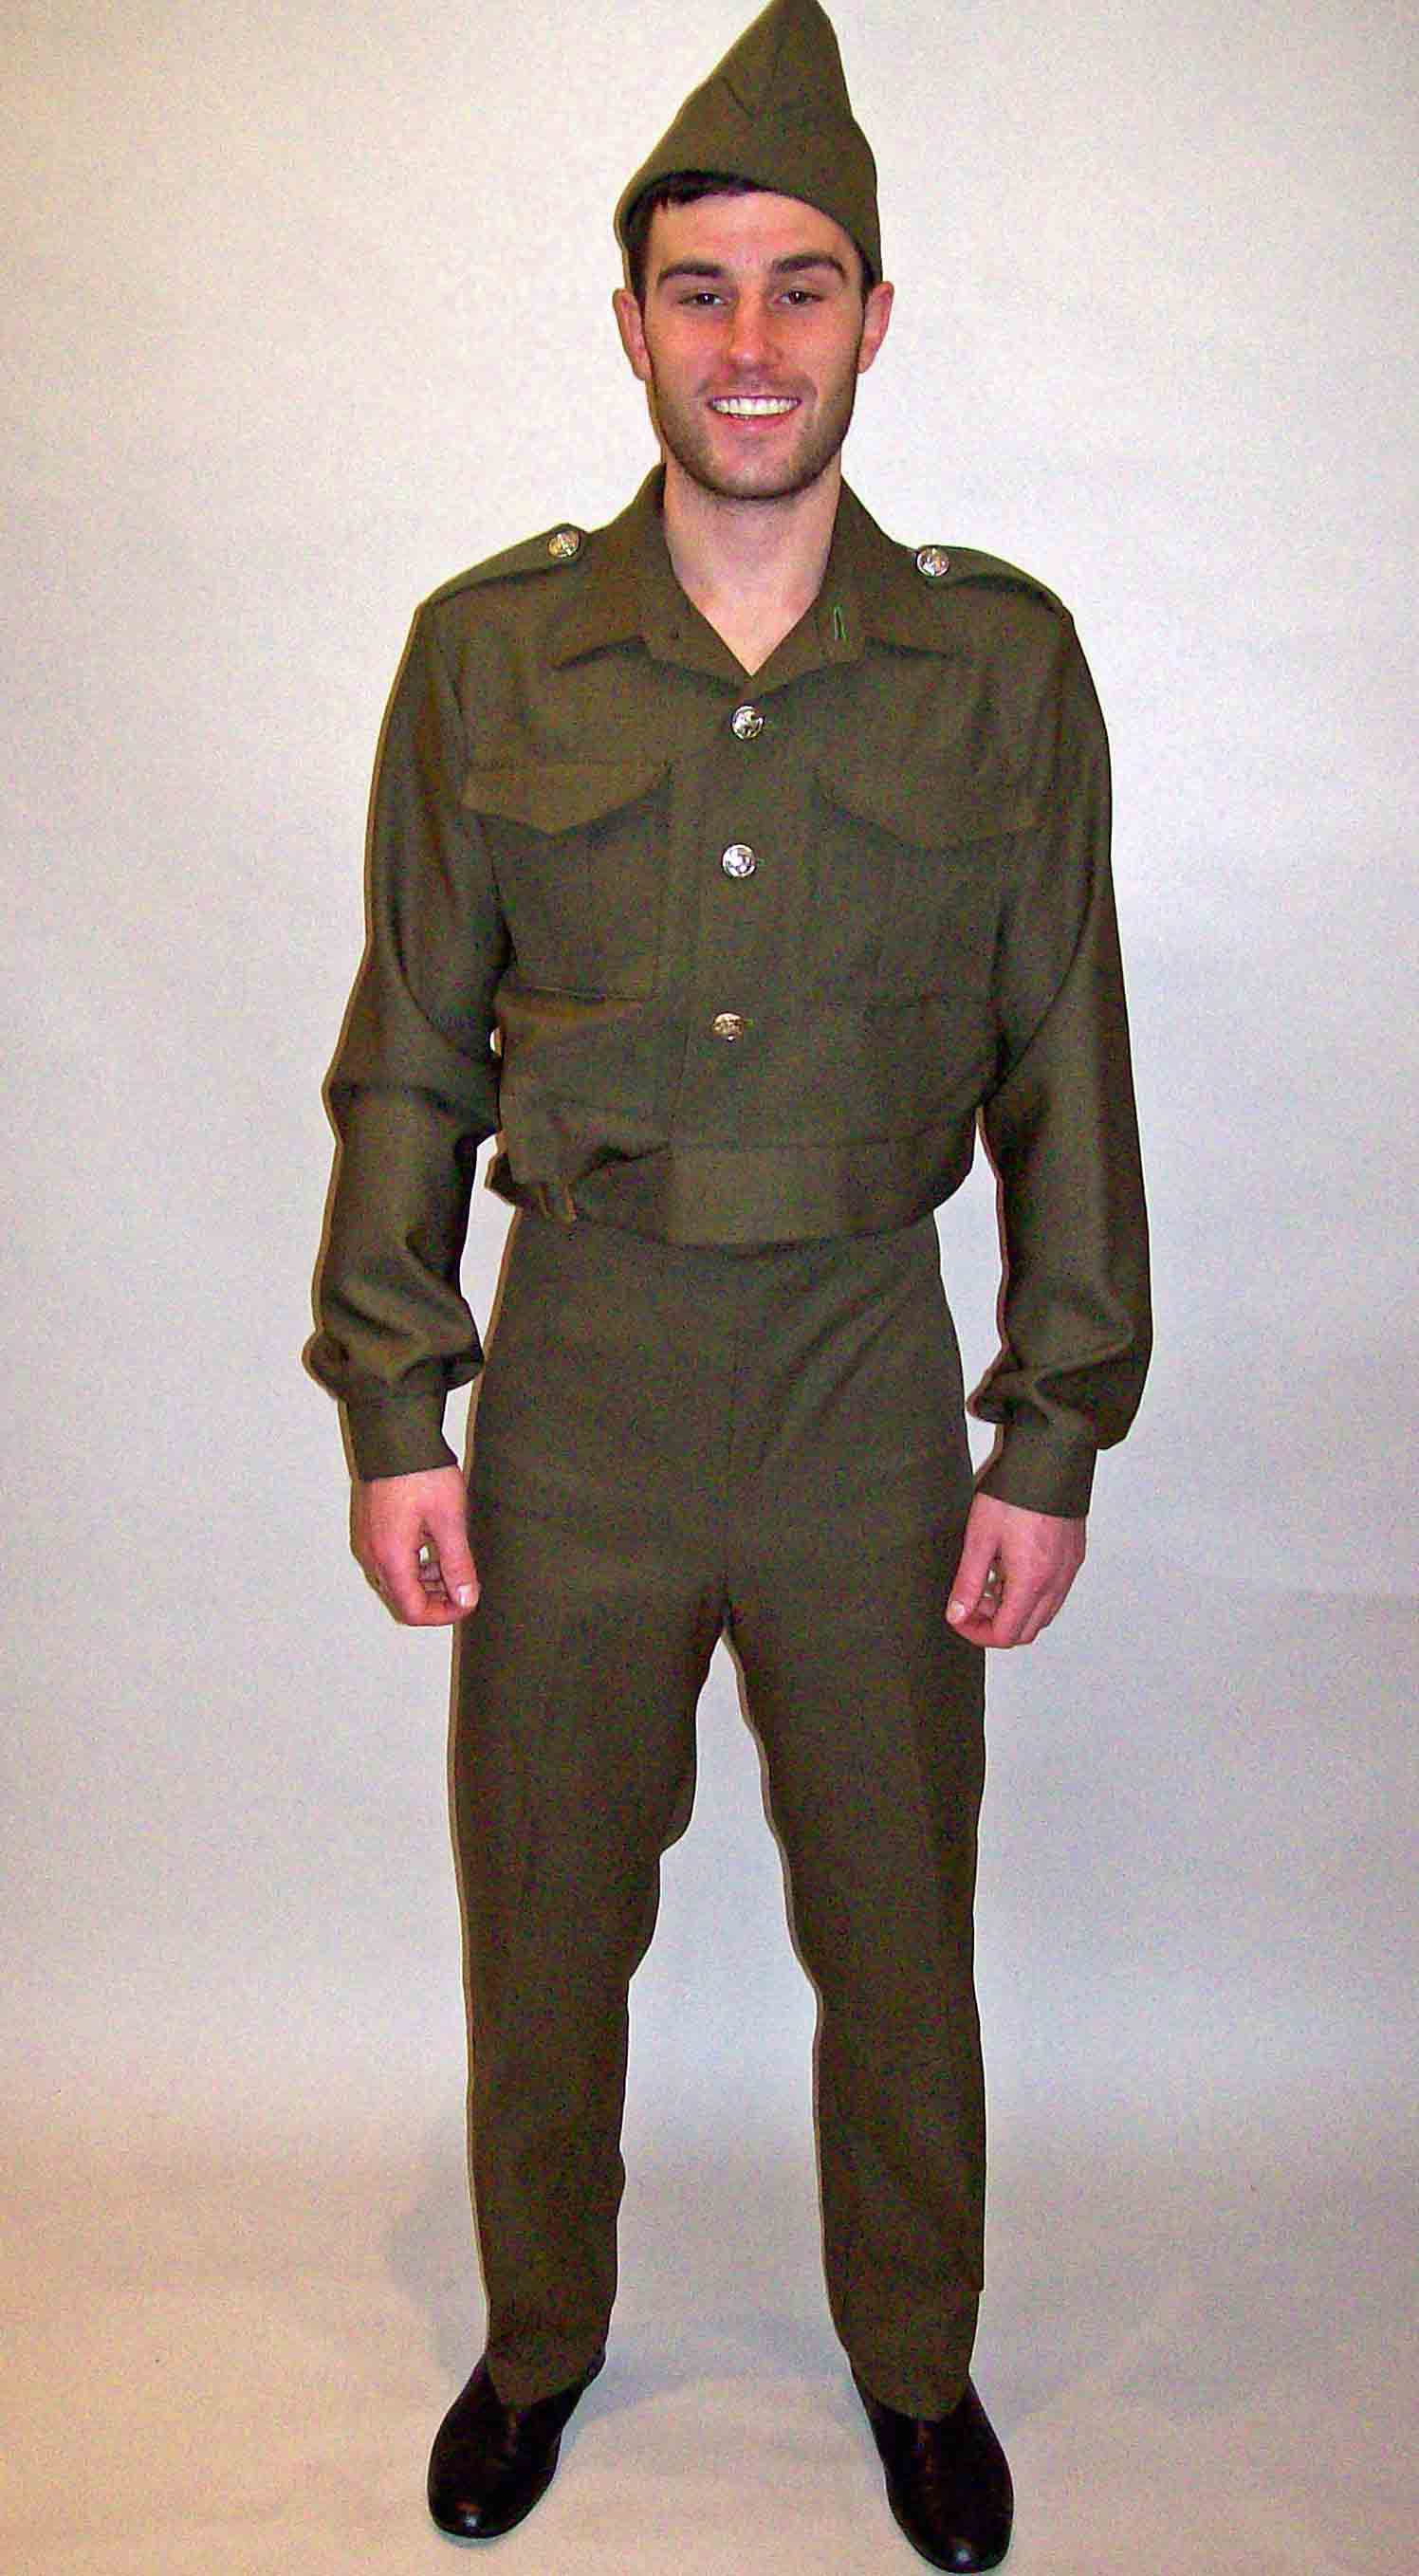 WW2 Home Guard Fancy Dress Costume